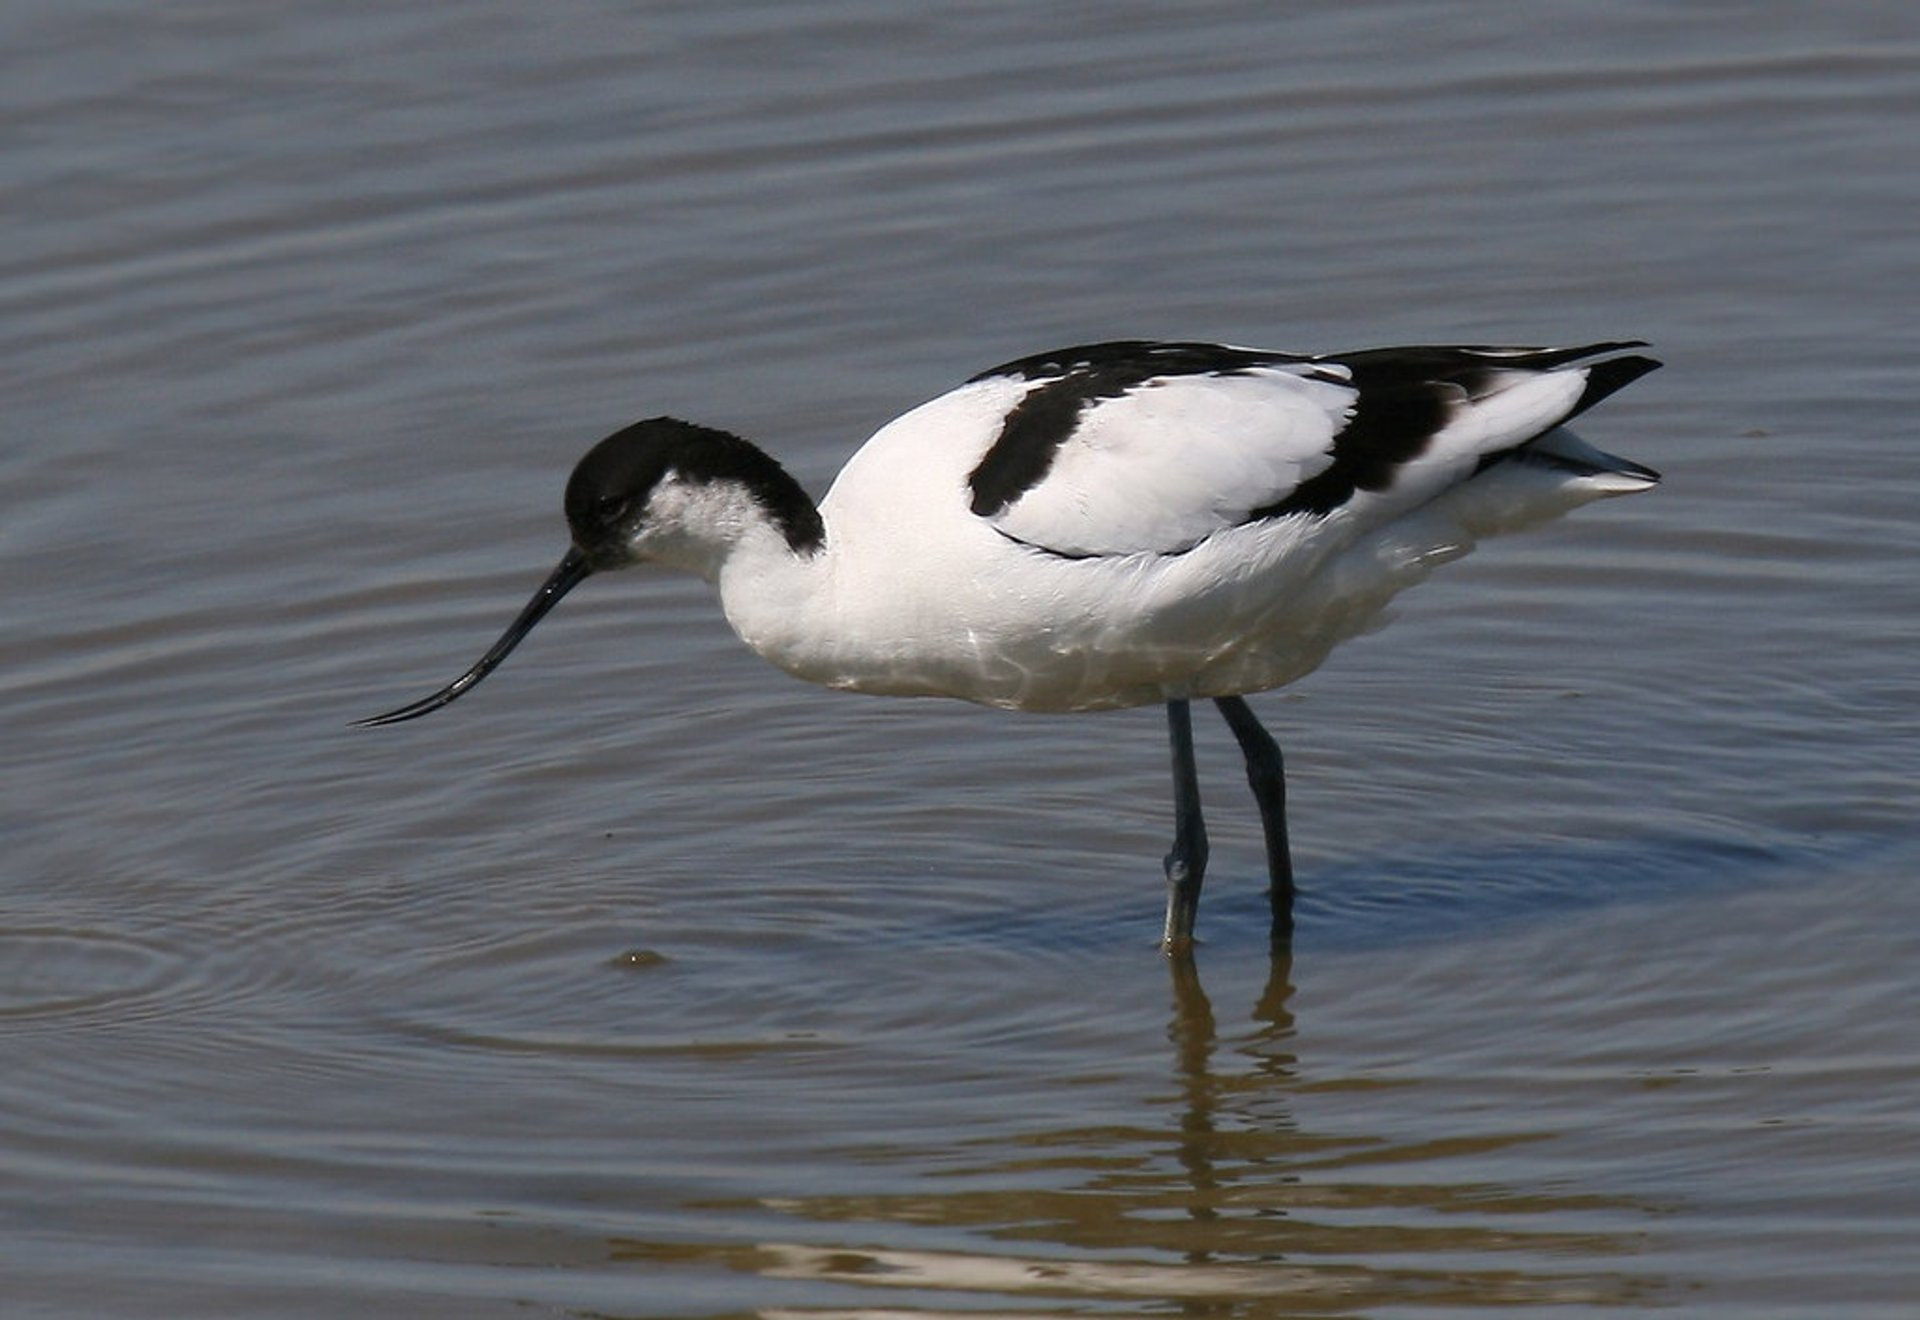 Avocet (Recurvirostra avosetta), photographed from one of the hides at Minsmere RSPB reserve in Suffolk, England 2019